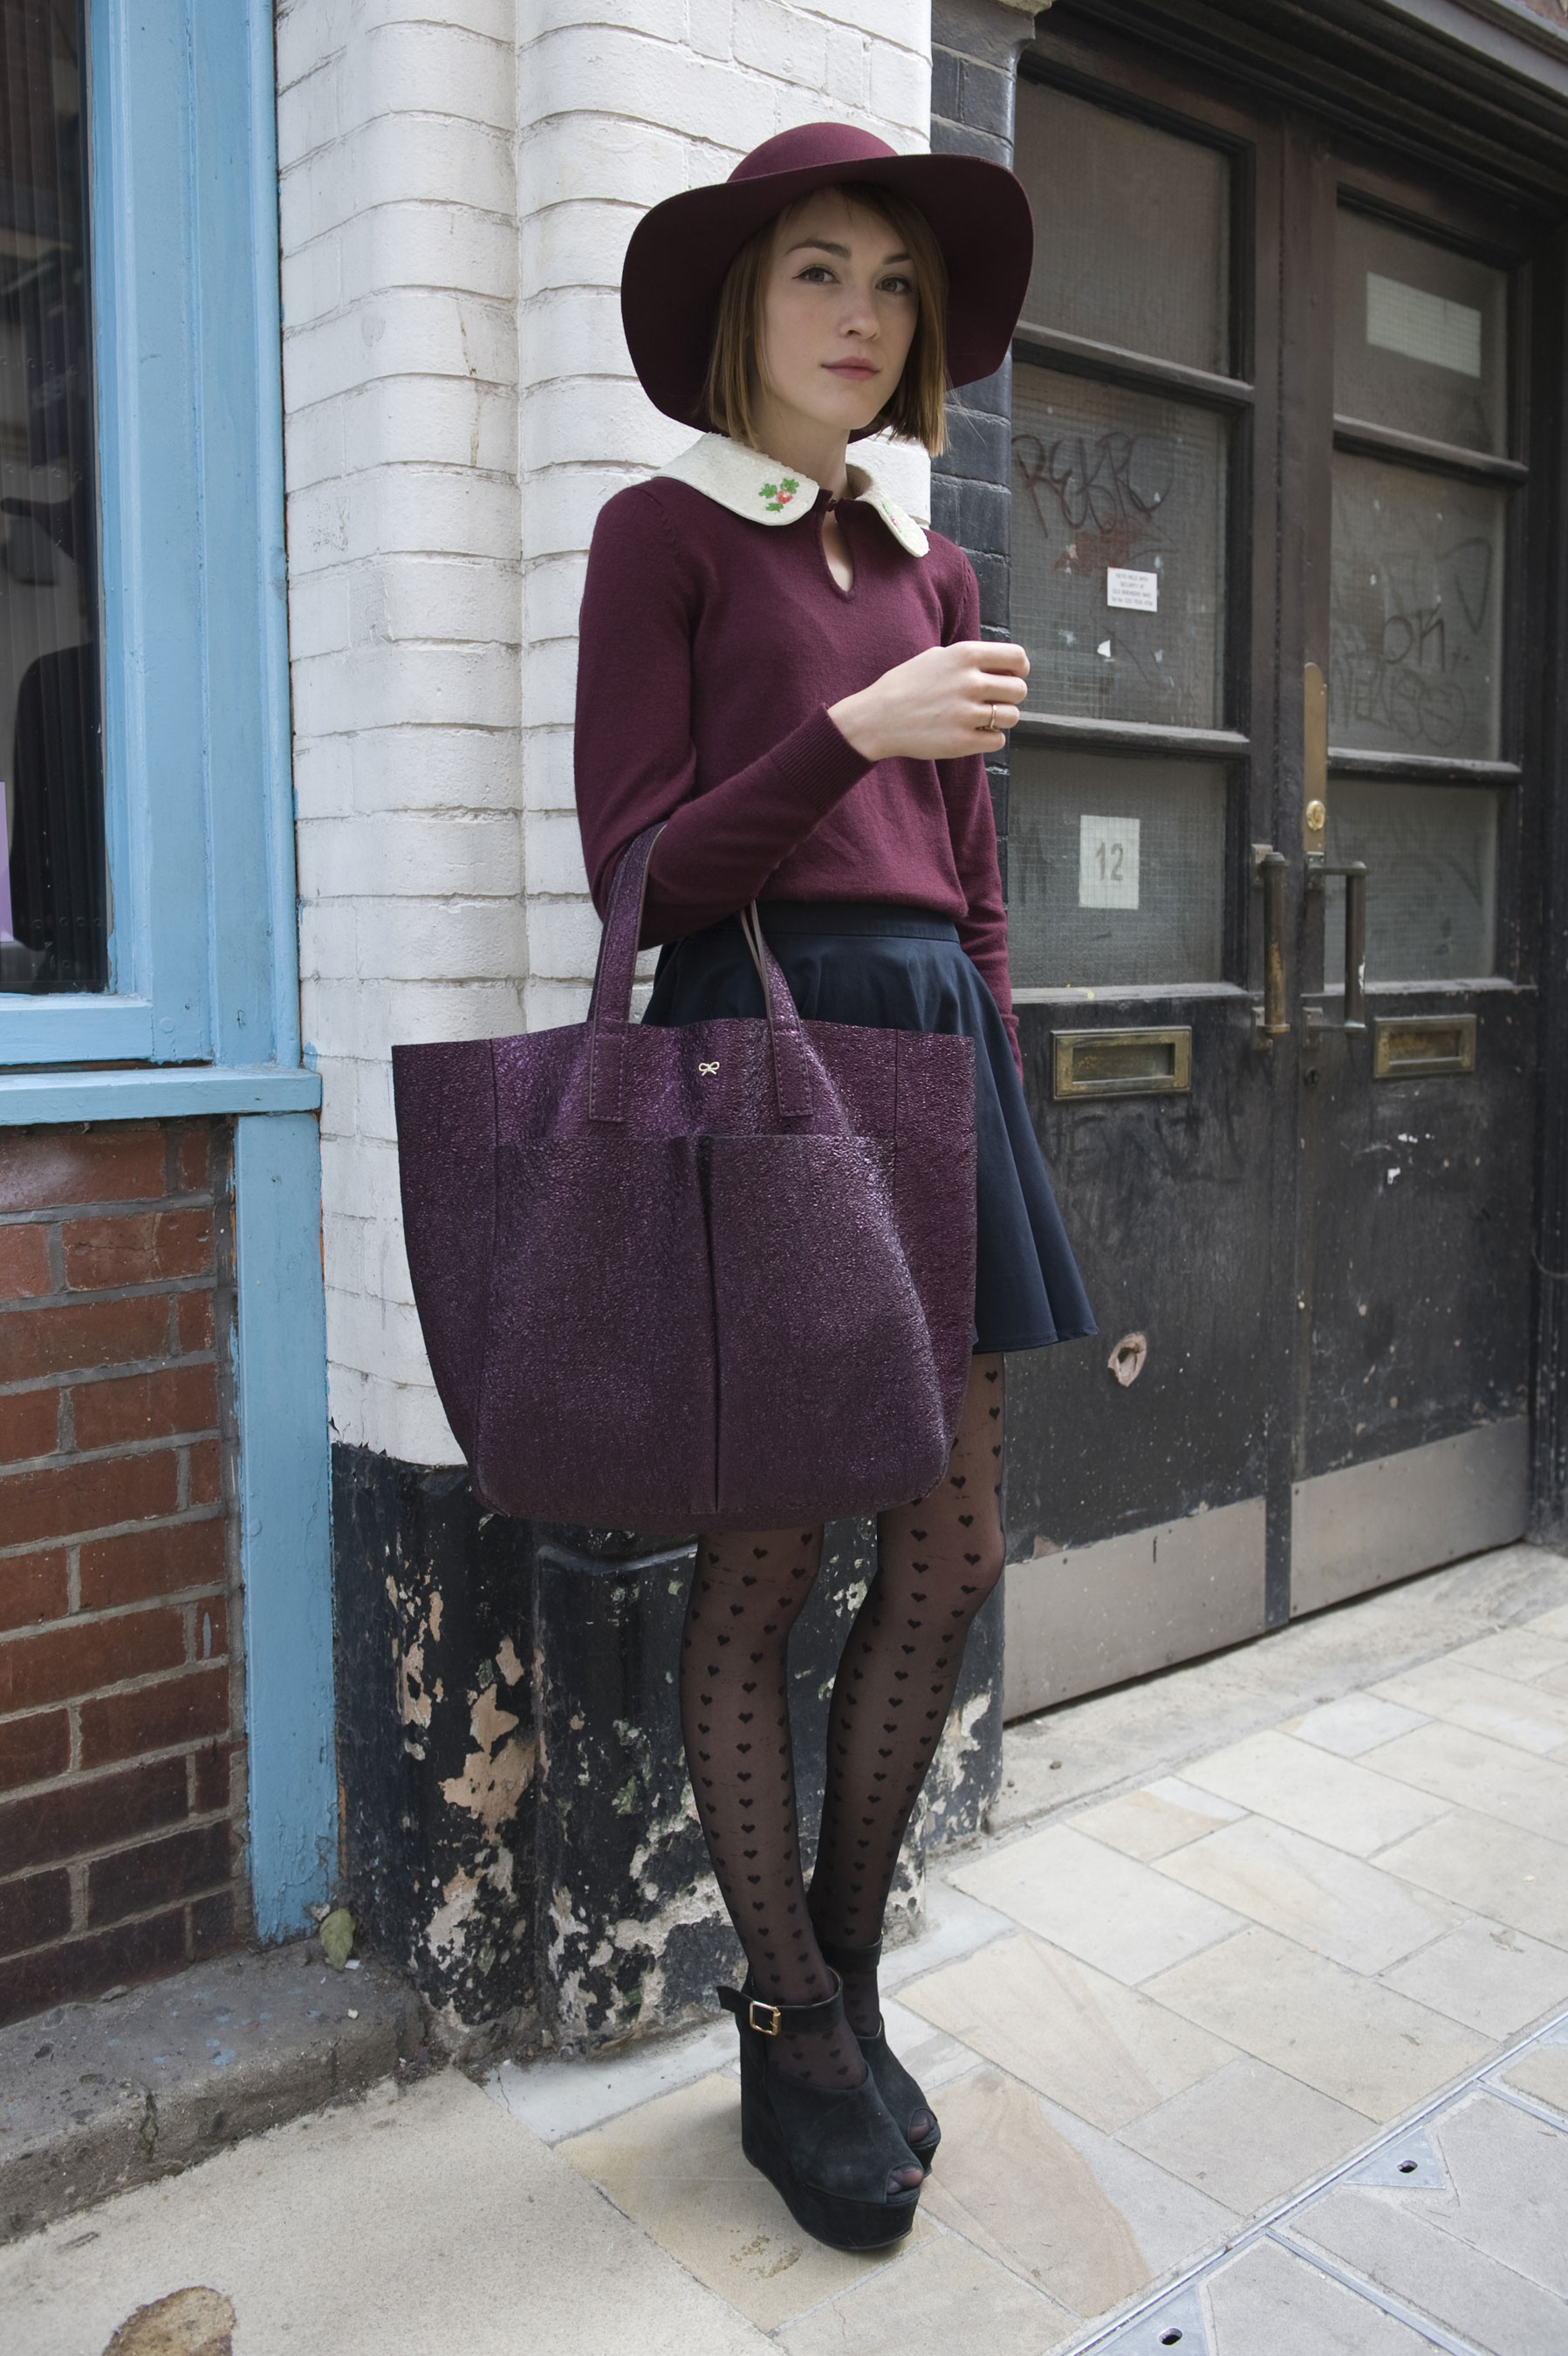 A boho hat and burgundy hues took the limelight in this ladylike look.